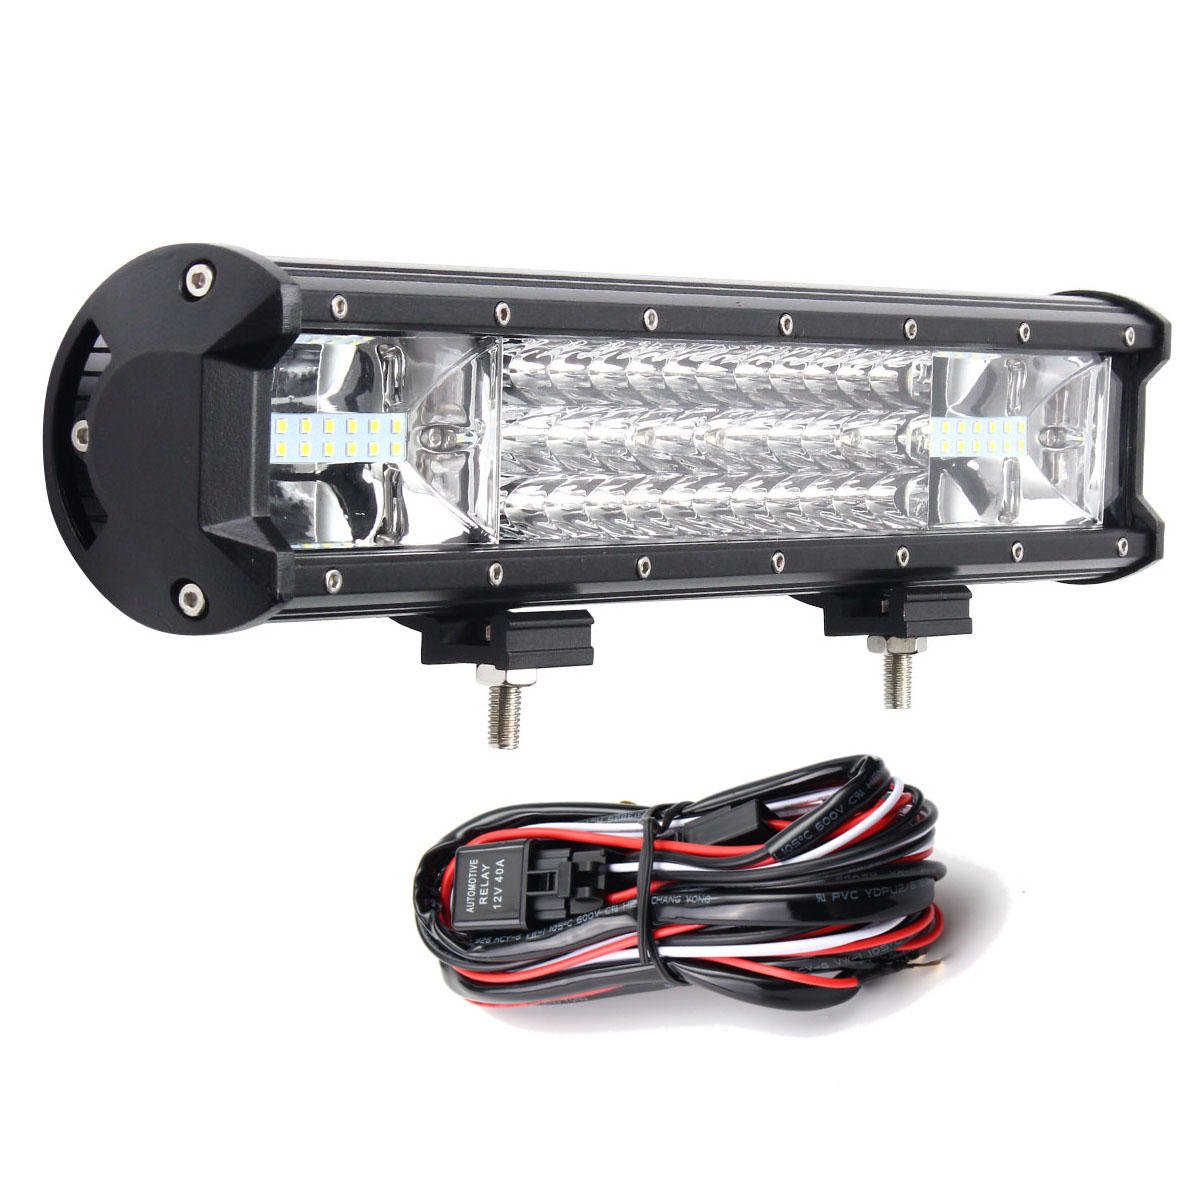 hight resolution of 16inch 216w 7d led work light bars flood spot combo 10 30v with wiring harness kit for jeep off road truck cod